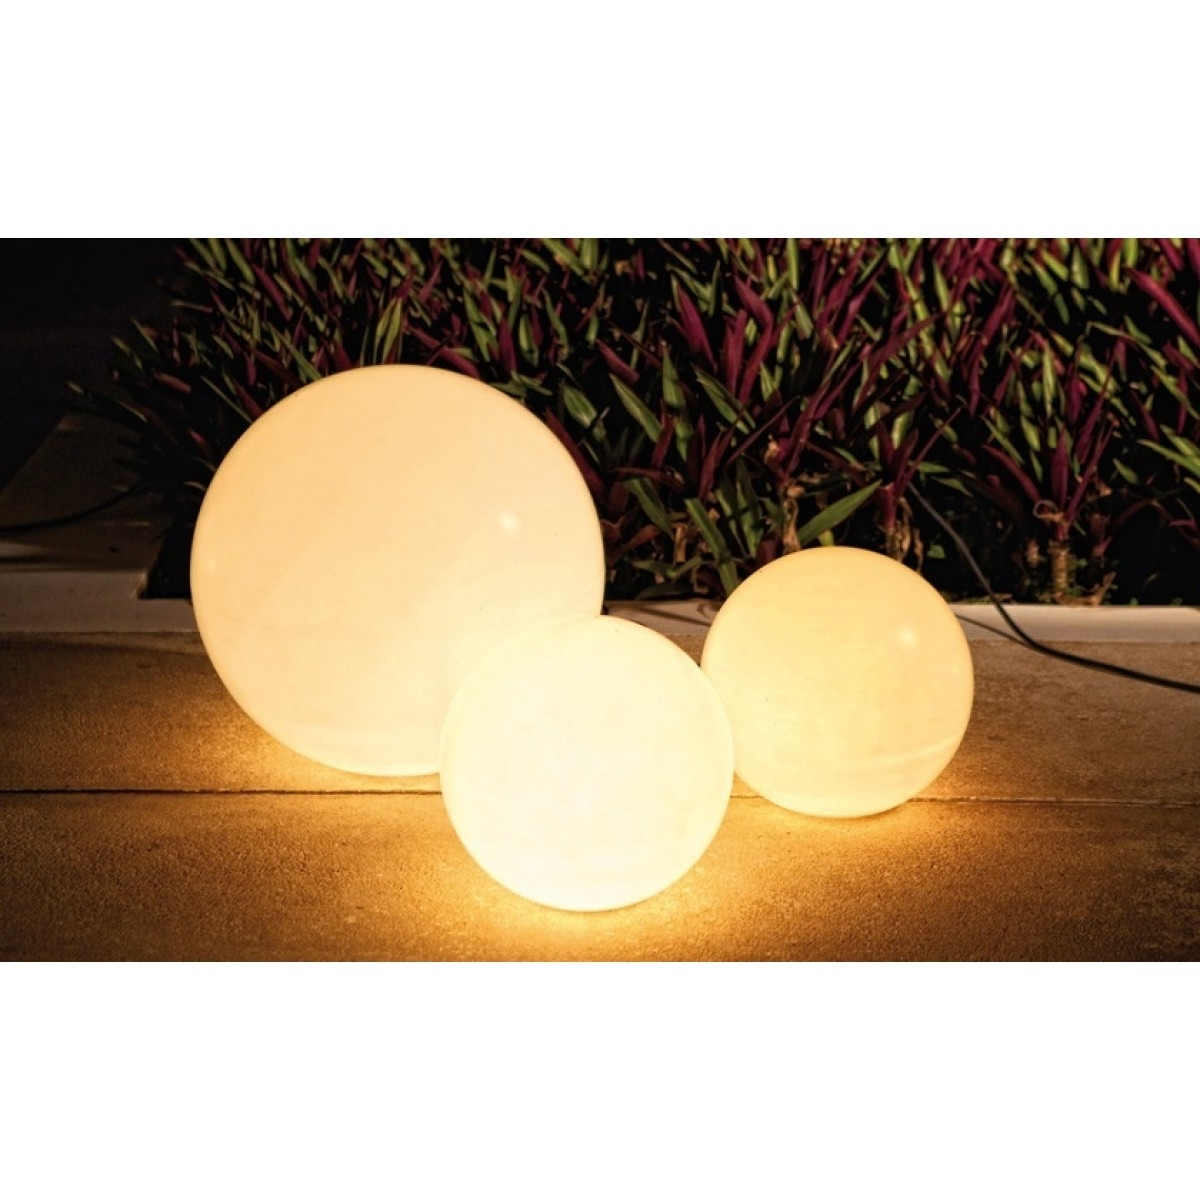 Well Known Outdoor Lamp Globes – Outdoor Lighting Ideas With Regard To Outdoor Globe Lanterns (View 8 of 20)